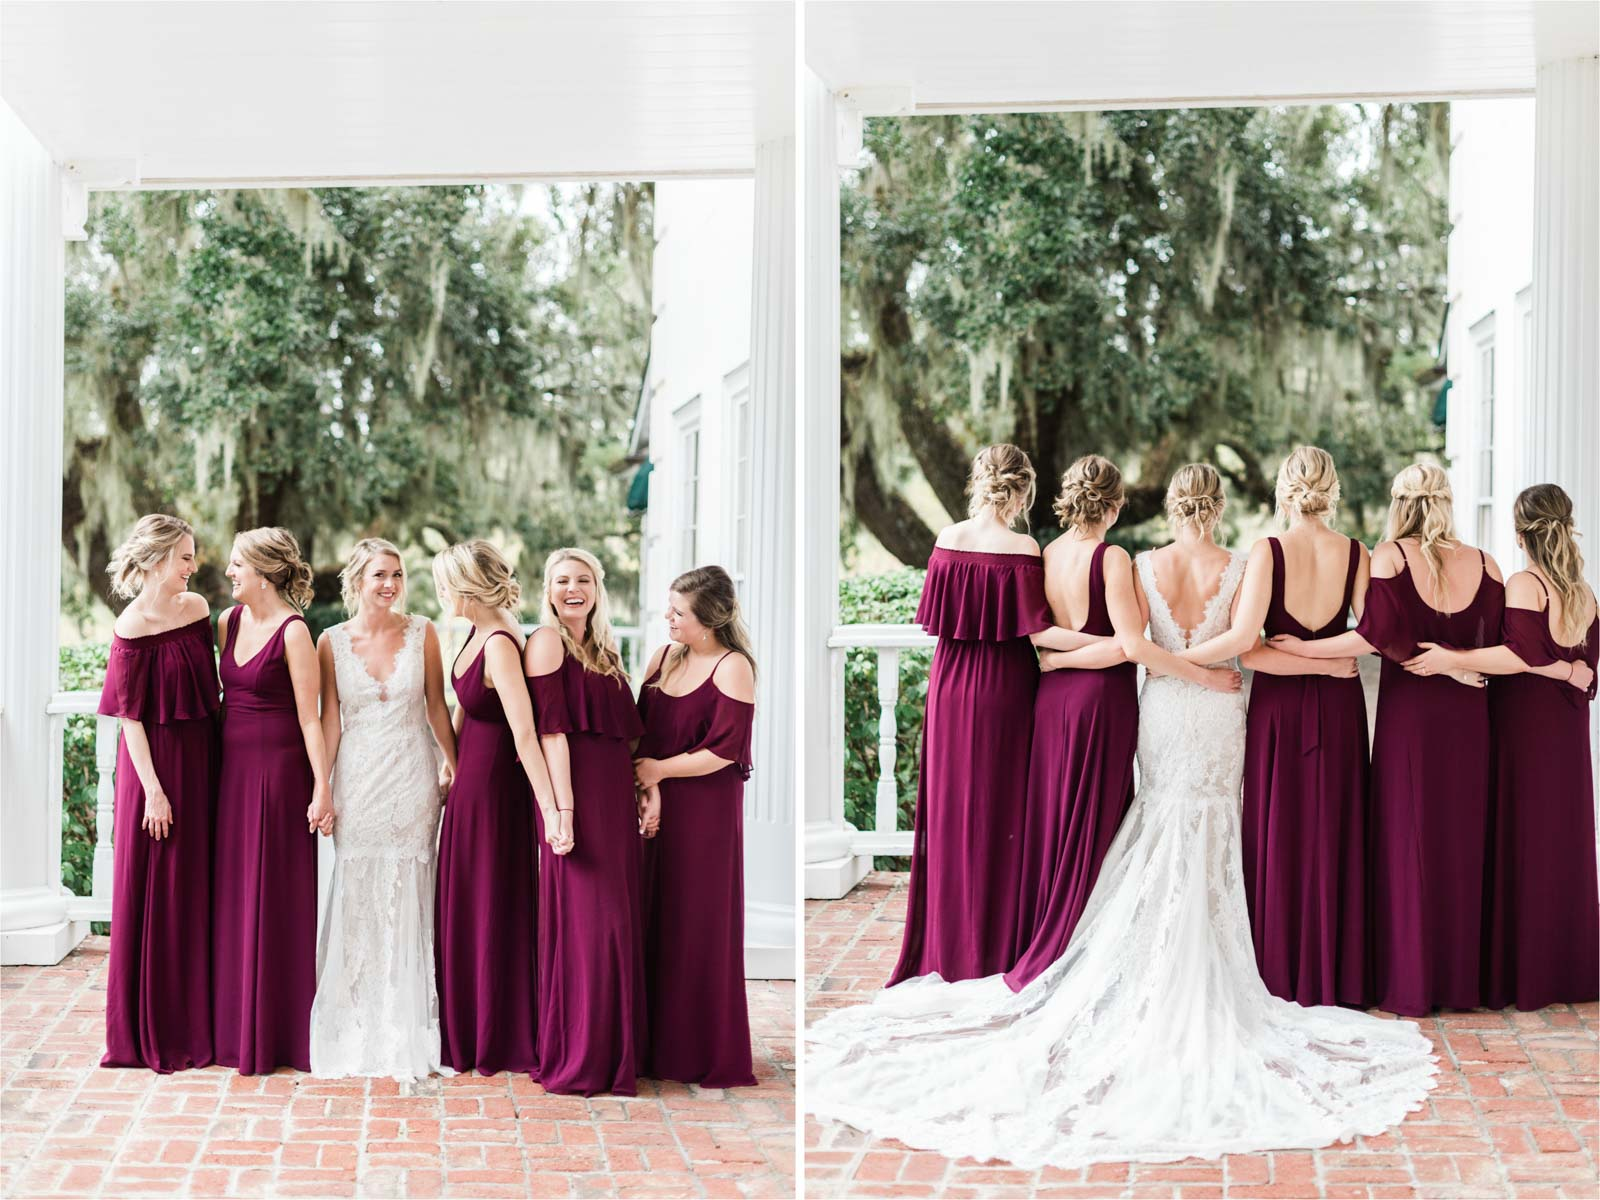 Wedding at Heritage Plantation in Pawley's Island_Markie Walden Photo-63.jpg